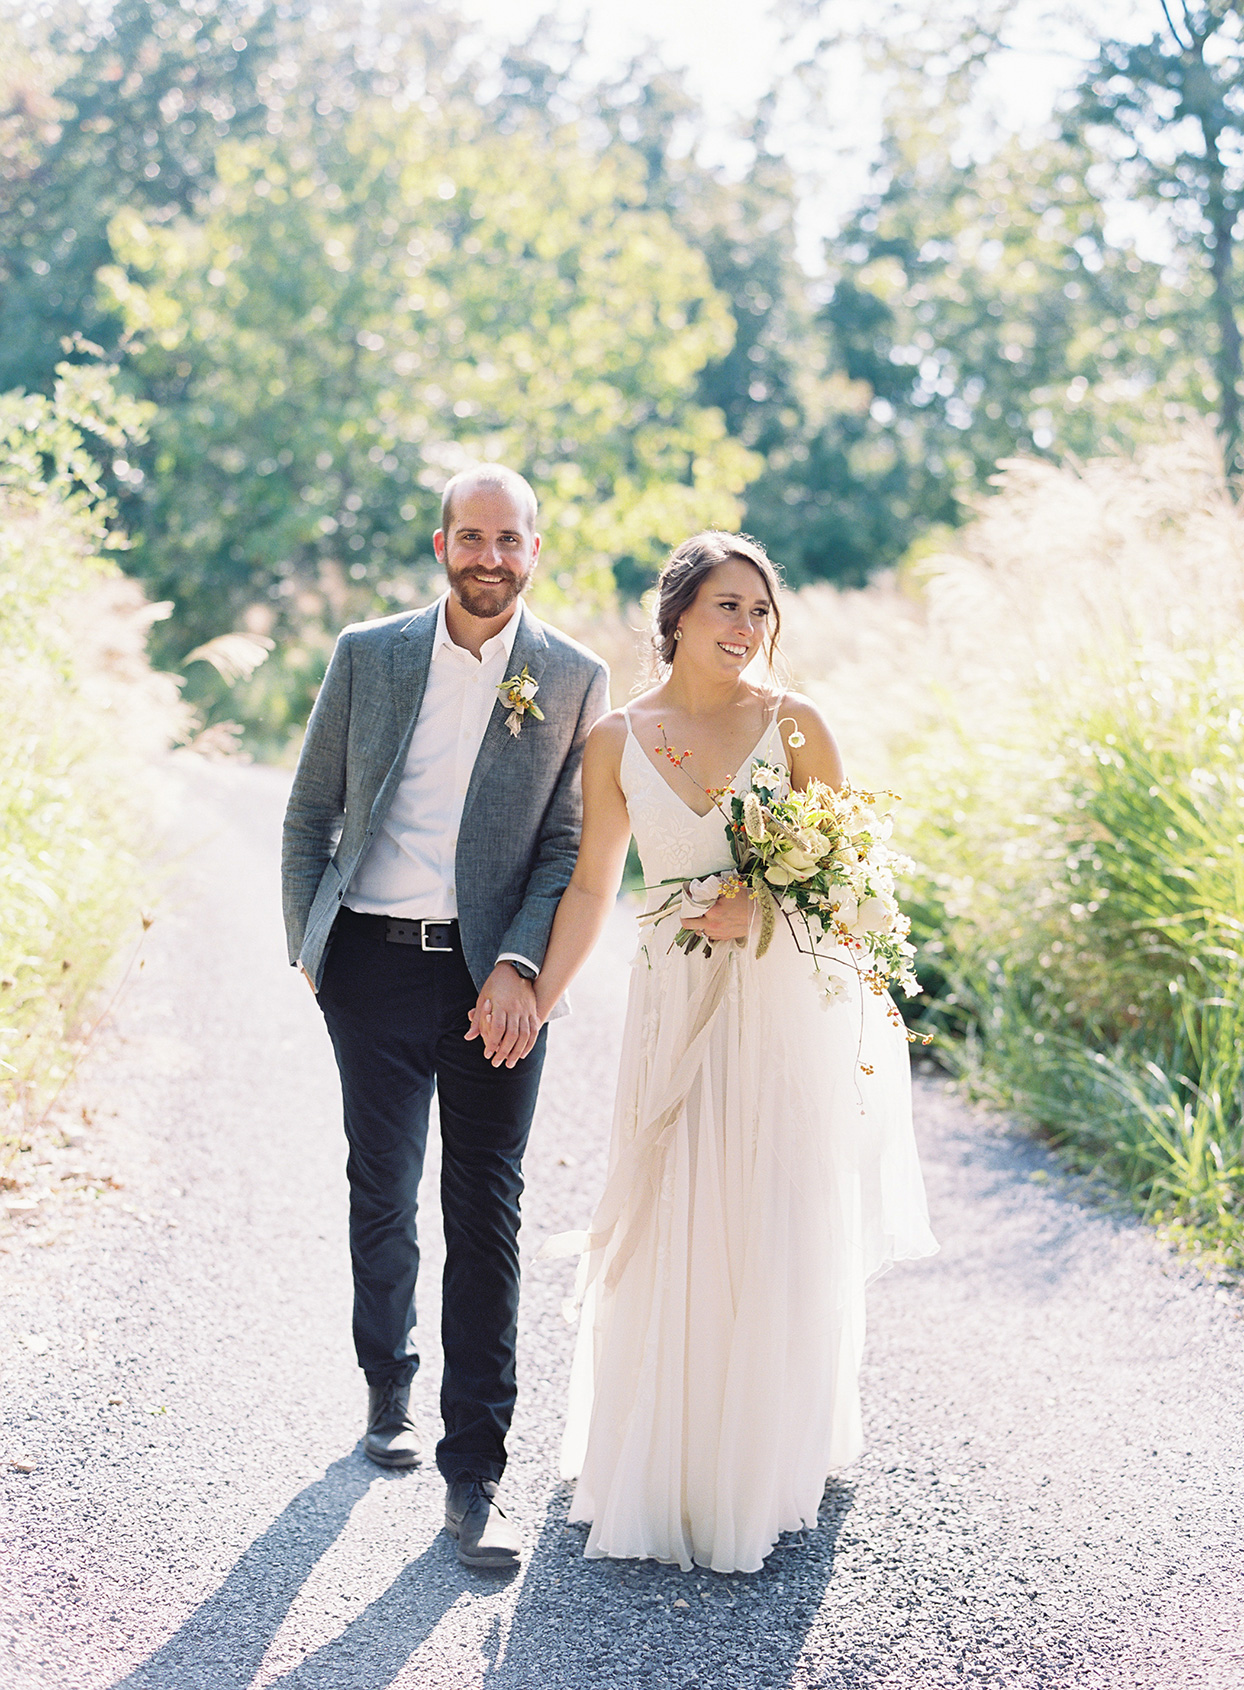 bride and groom smiling holding hands walking on gravel path